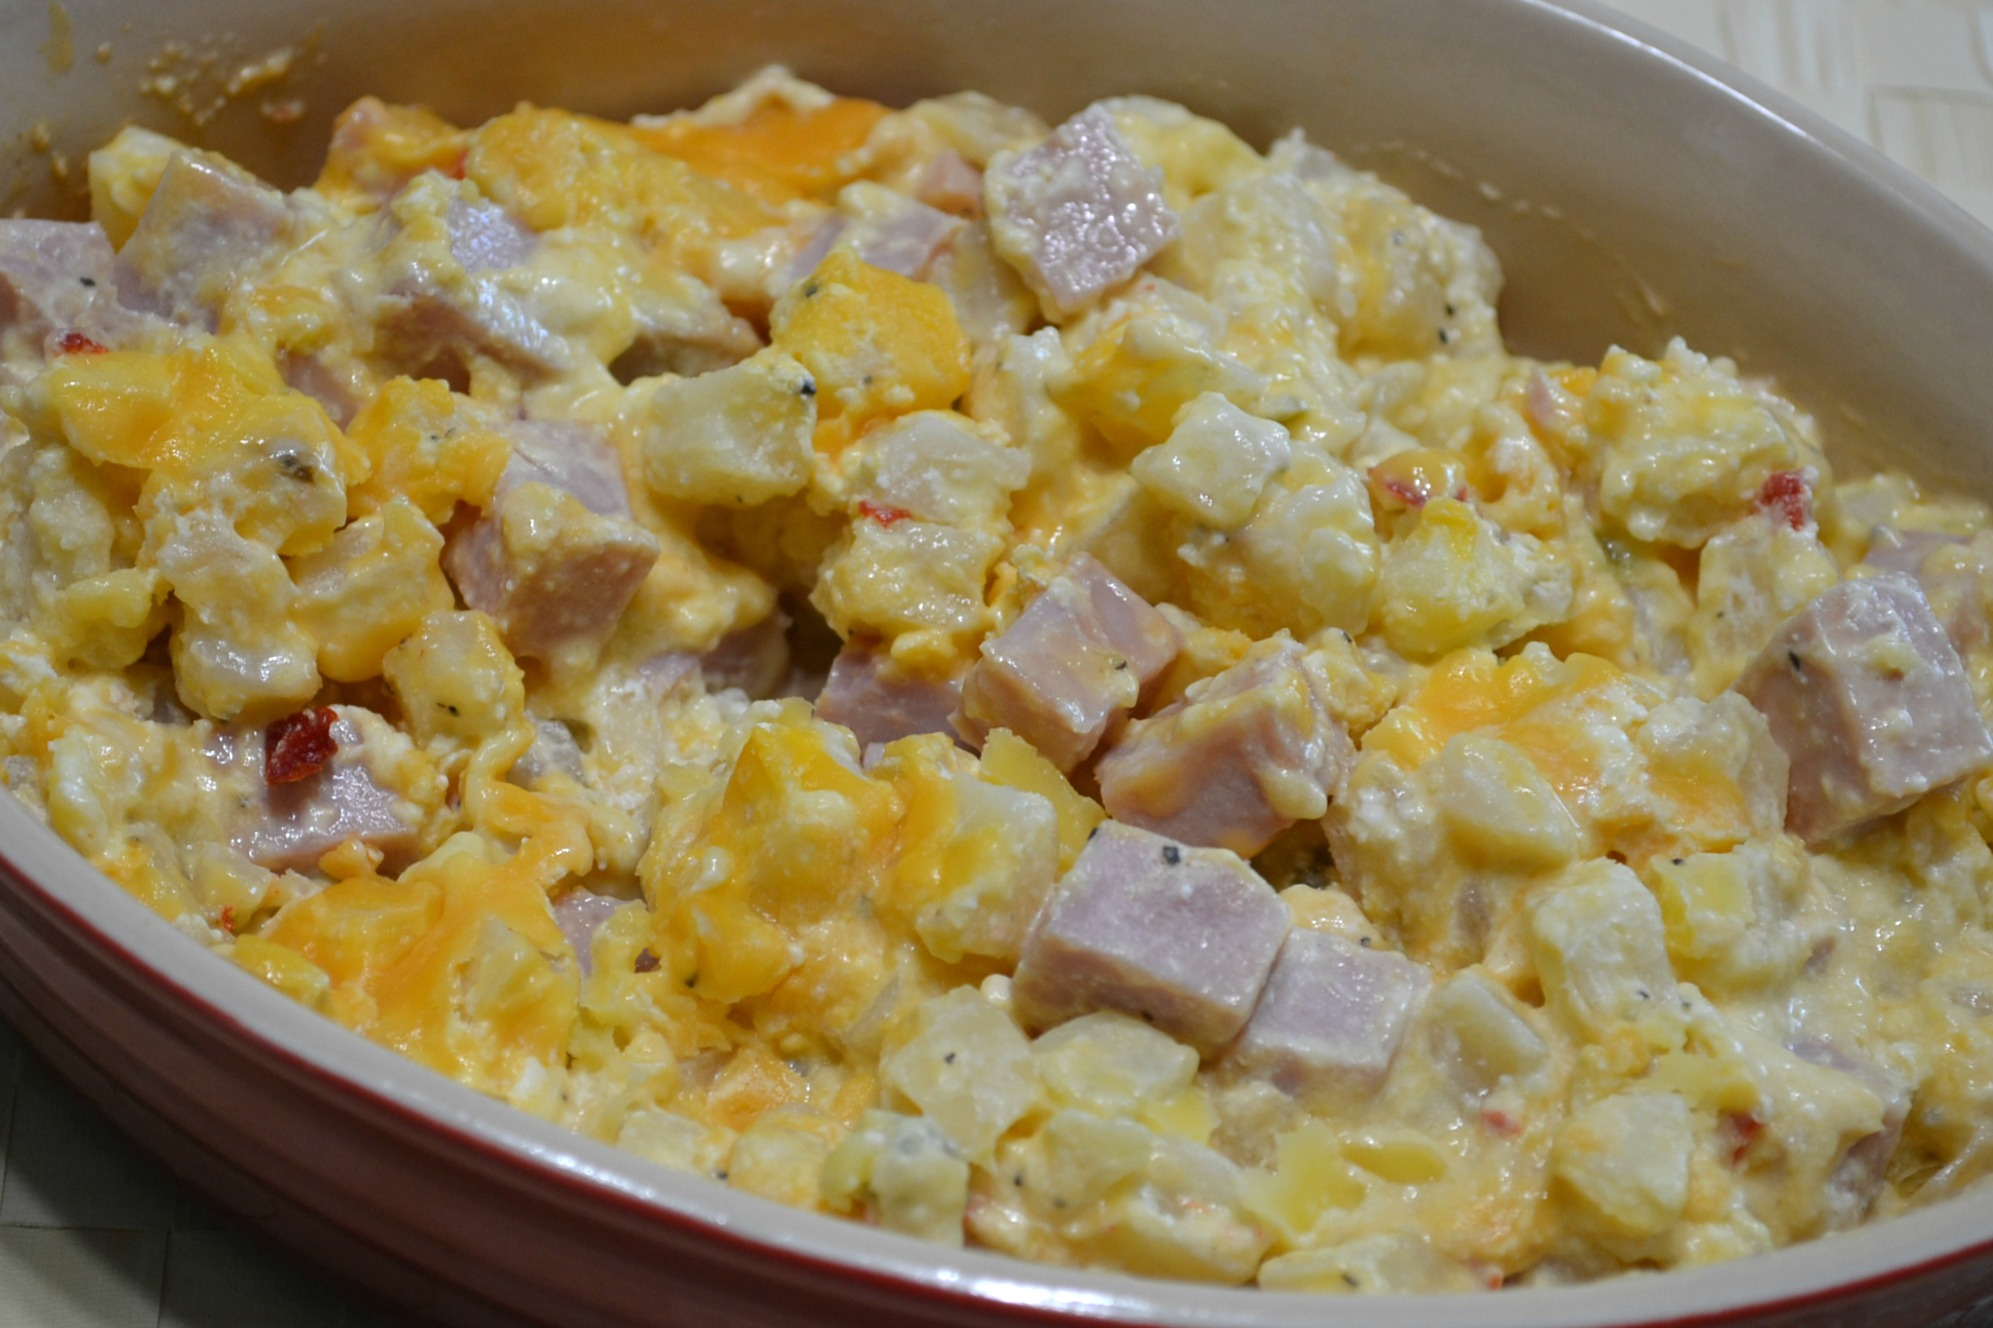 Hash brown casserole recipes with ham cubes.